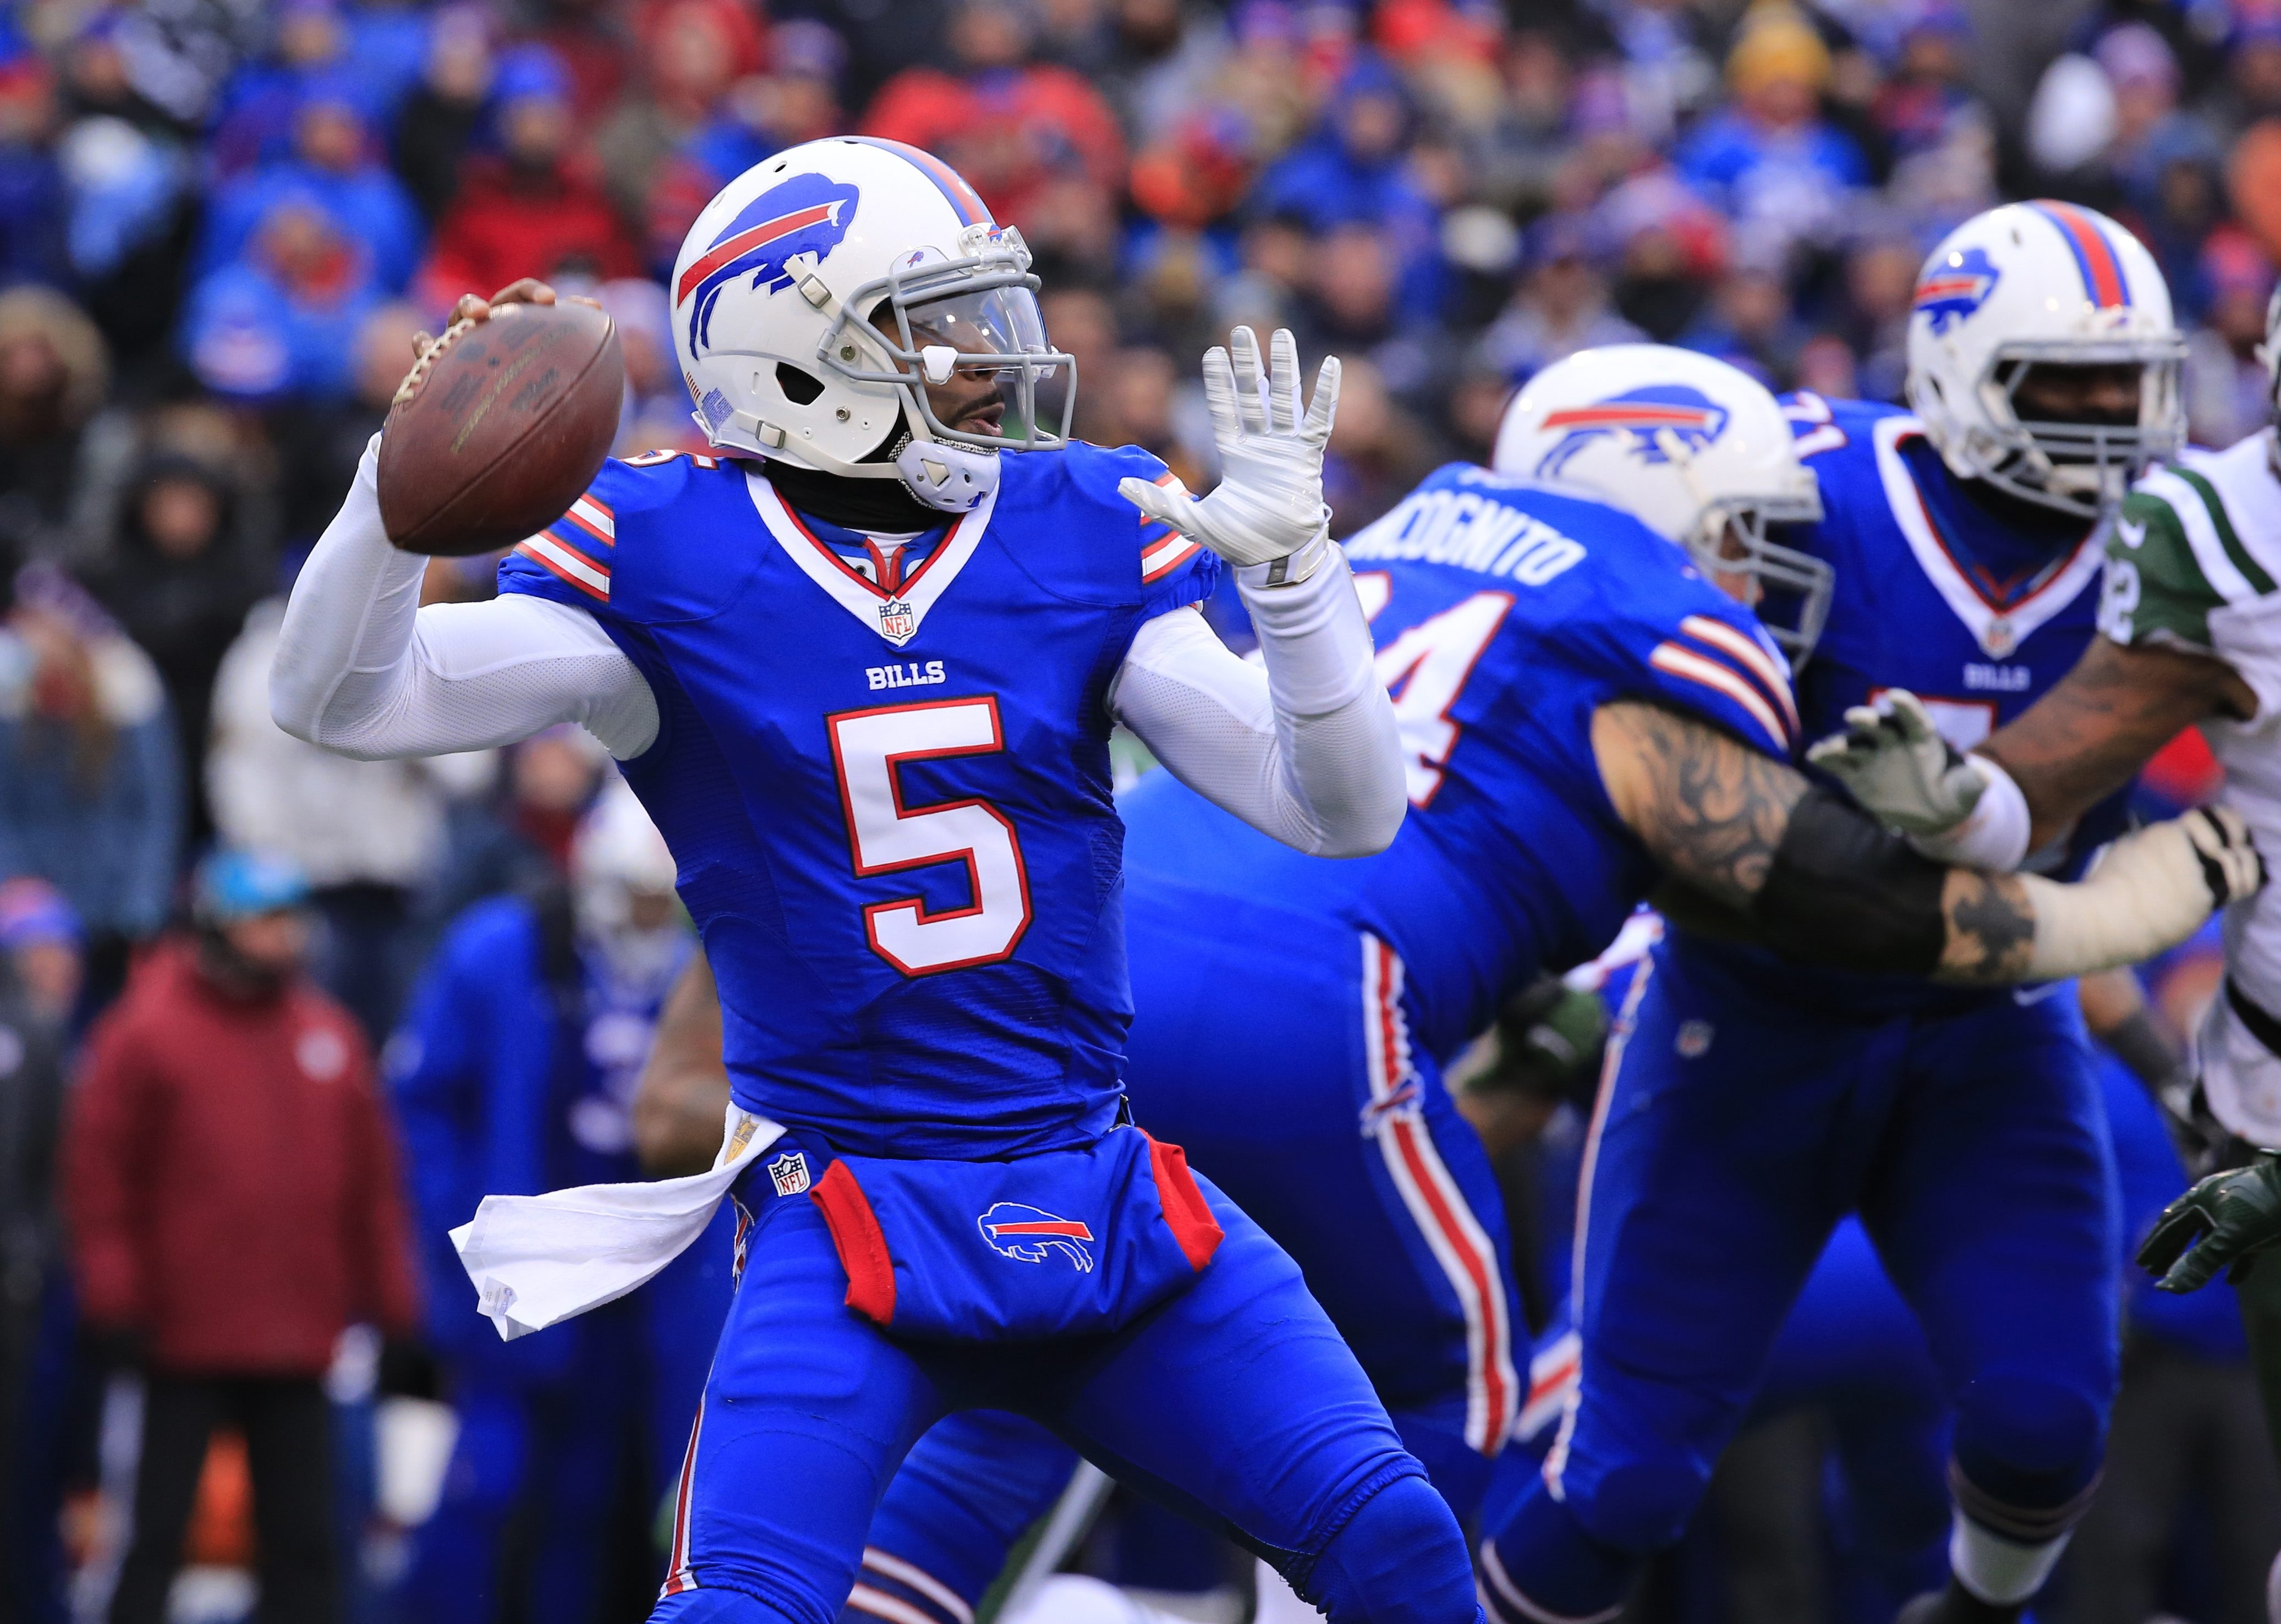 At $1 million in 2016, Tyrod Taylor is a bargain at quarterback for the Bills, but he has just received added  ammunition to seek a big raise when it's time to negotiate a new contract.